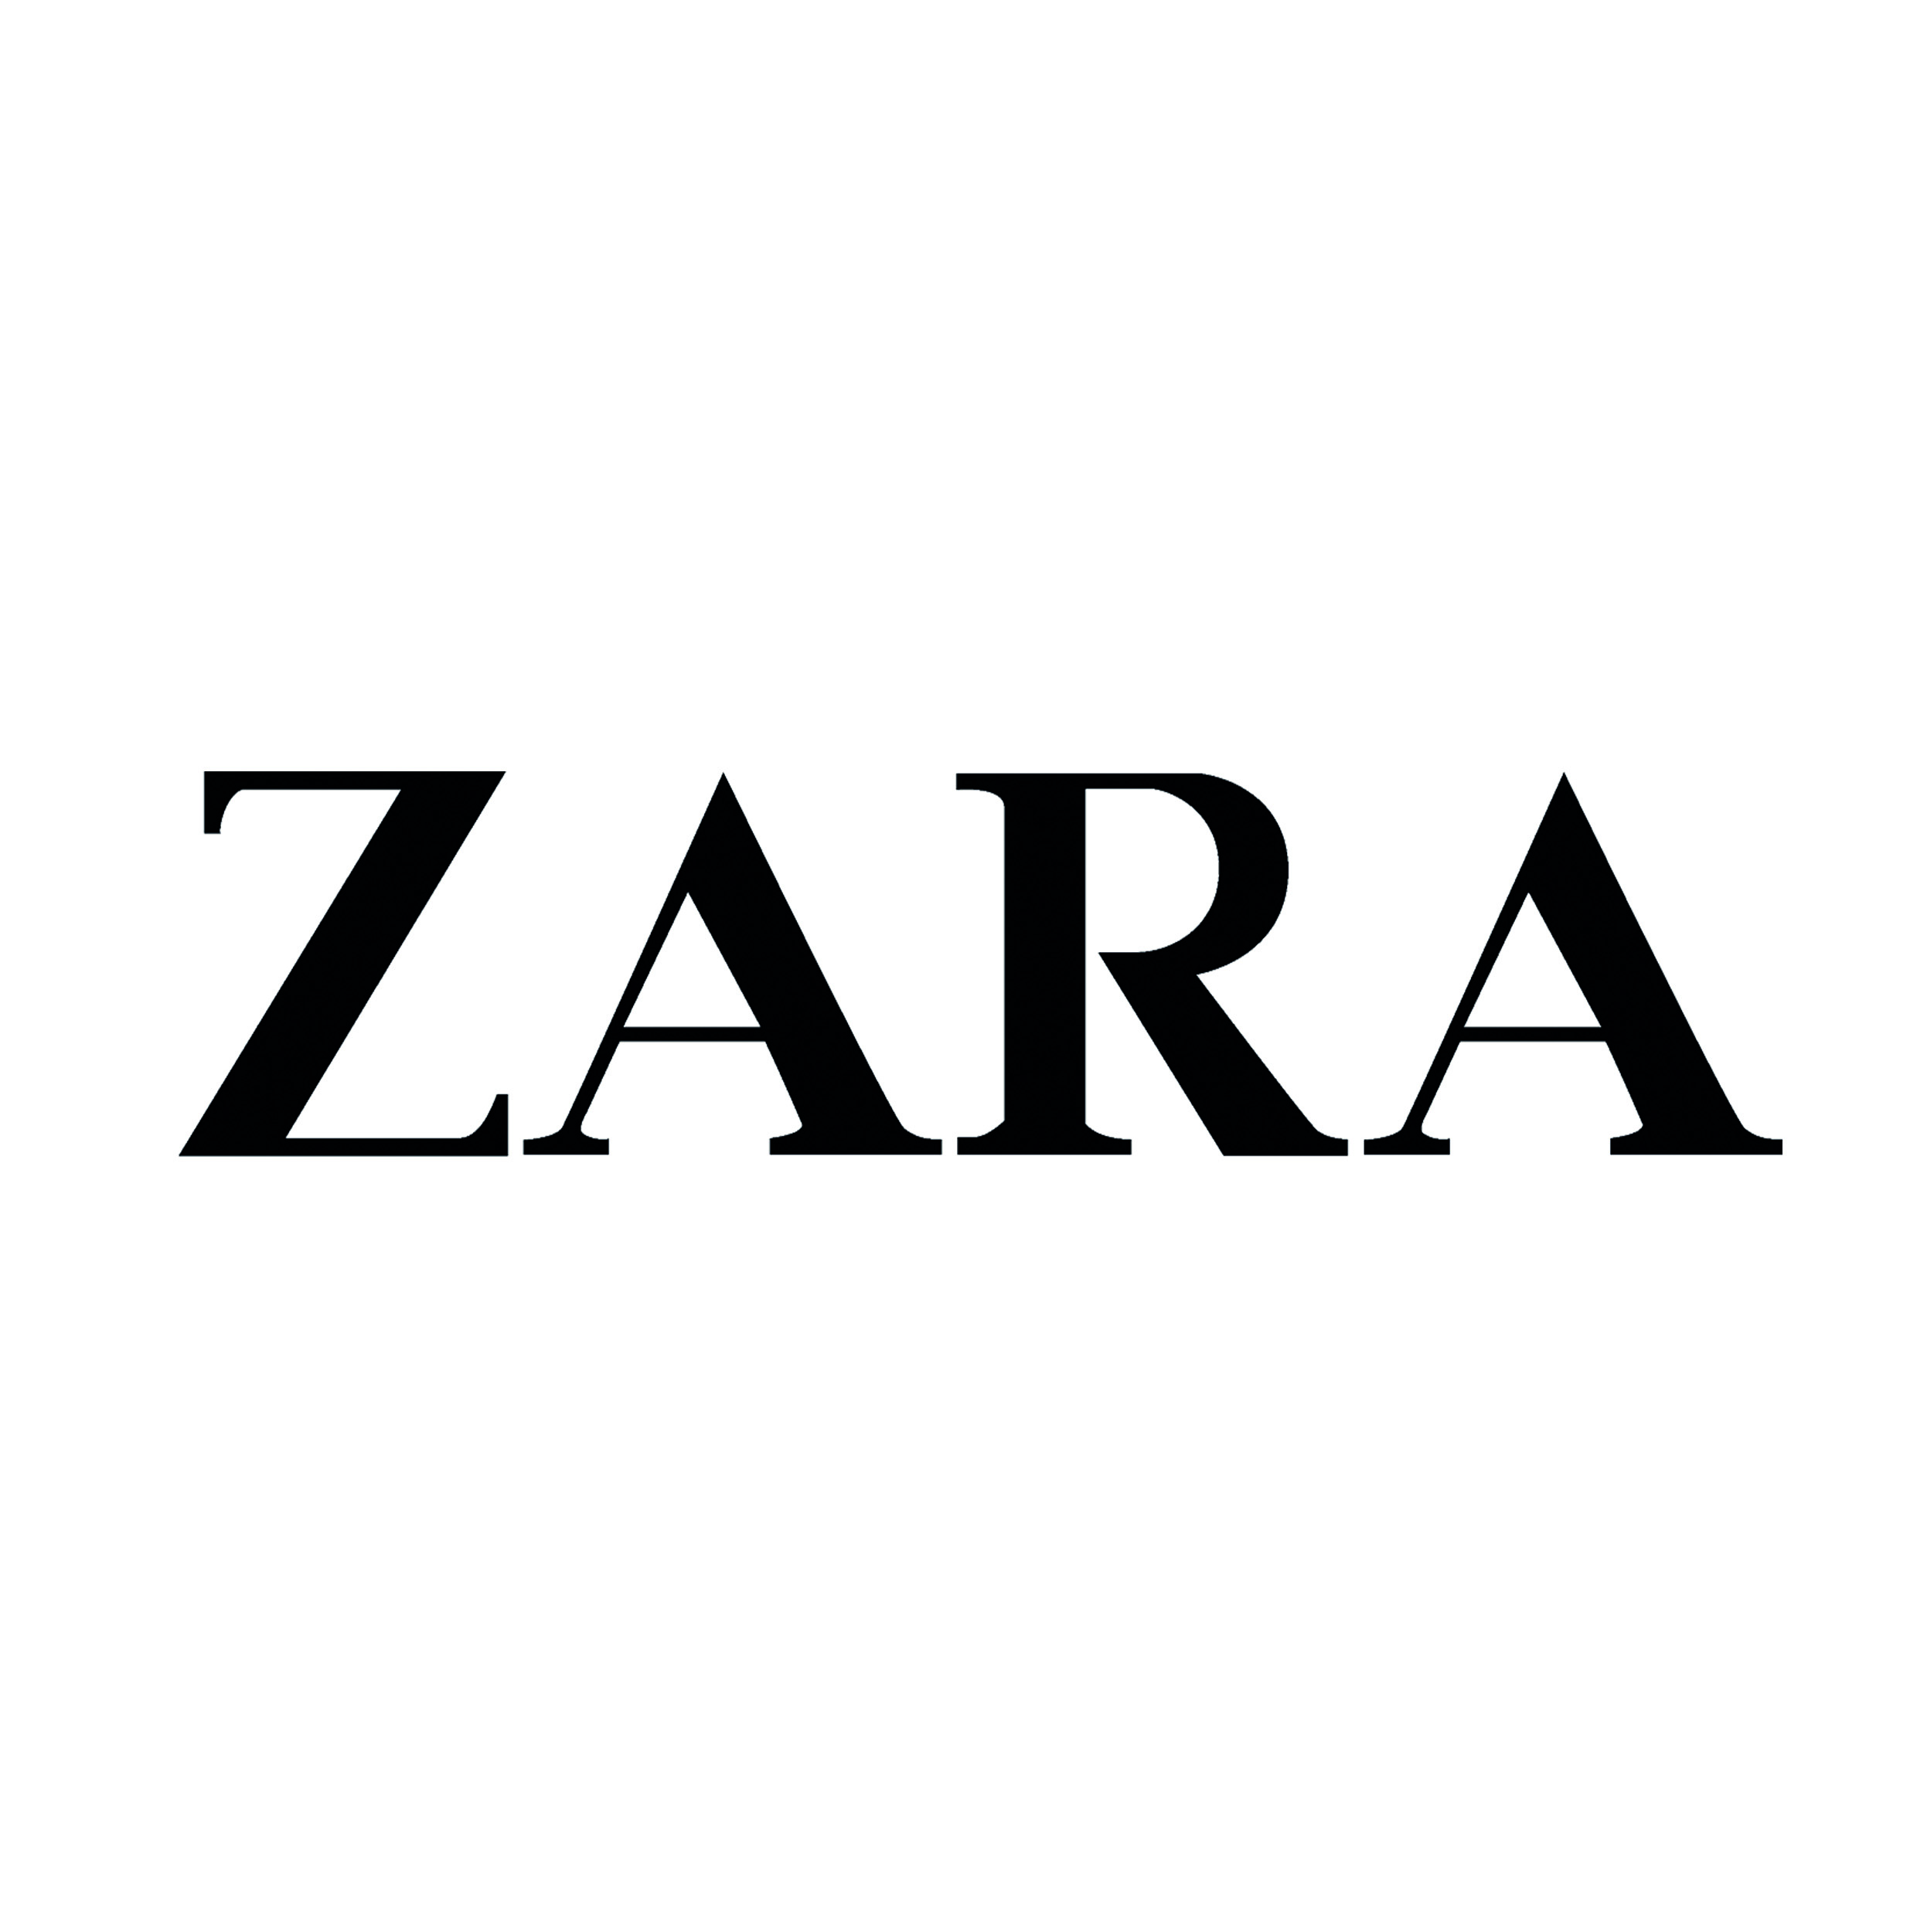 Zara resized.jpg